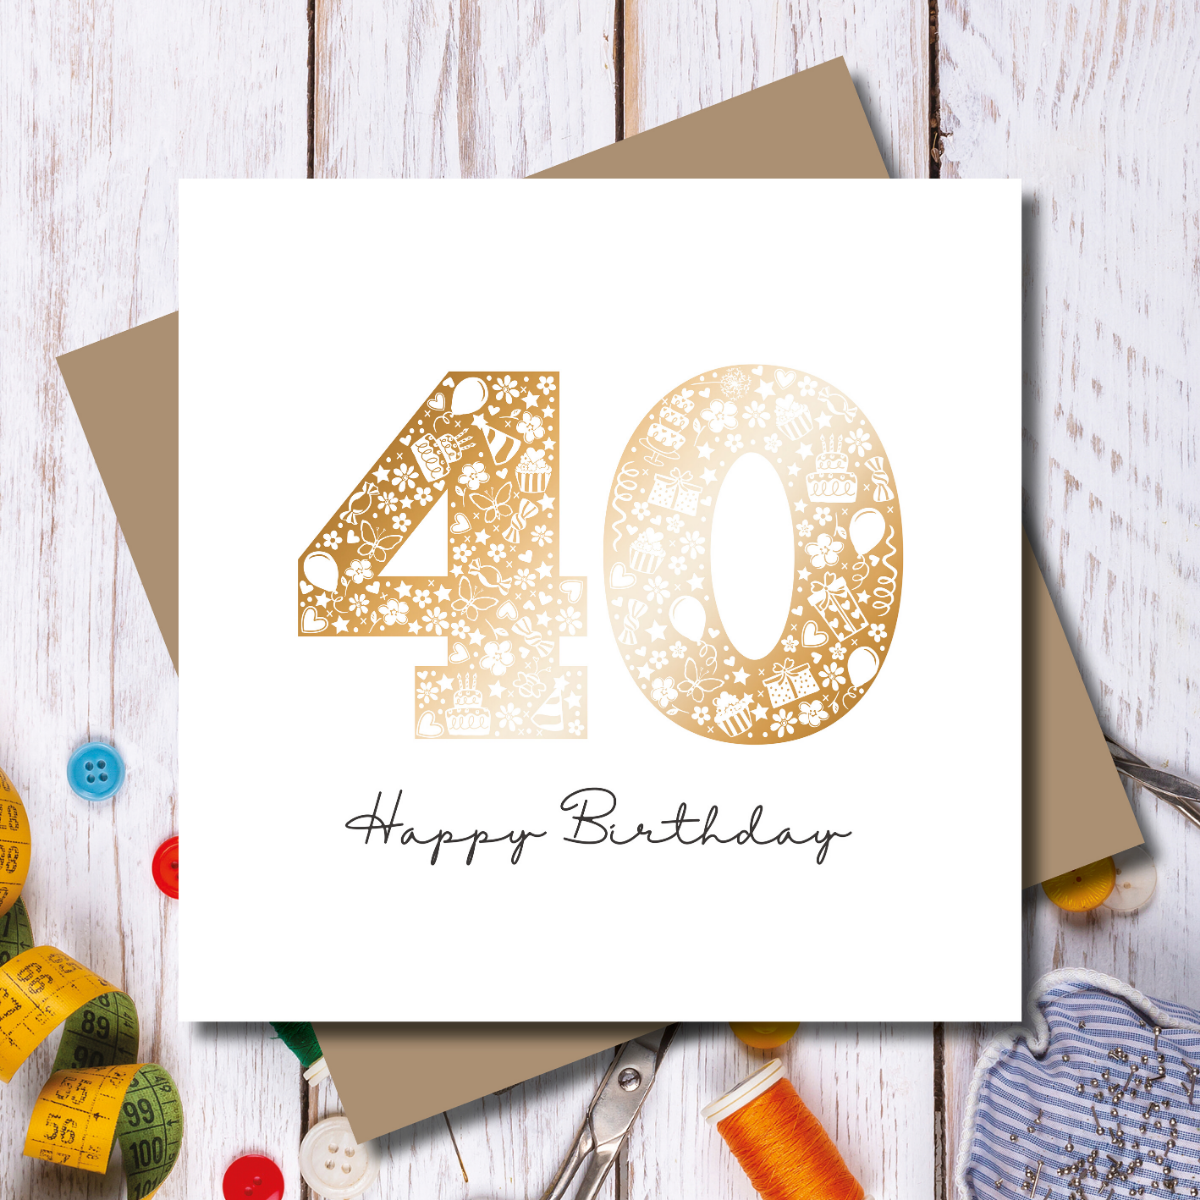 Happy Birthday Card - 40